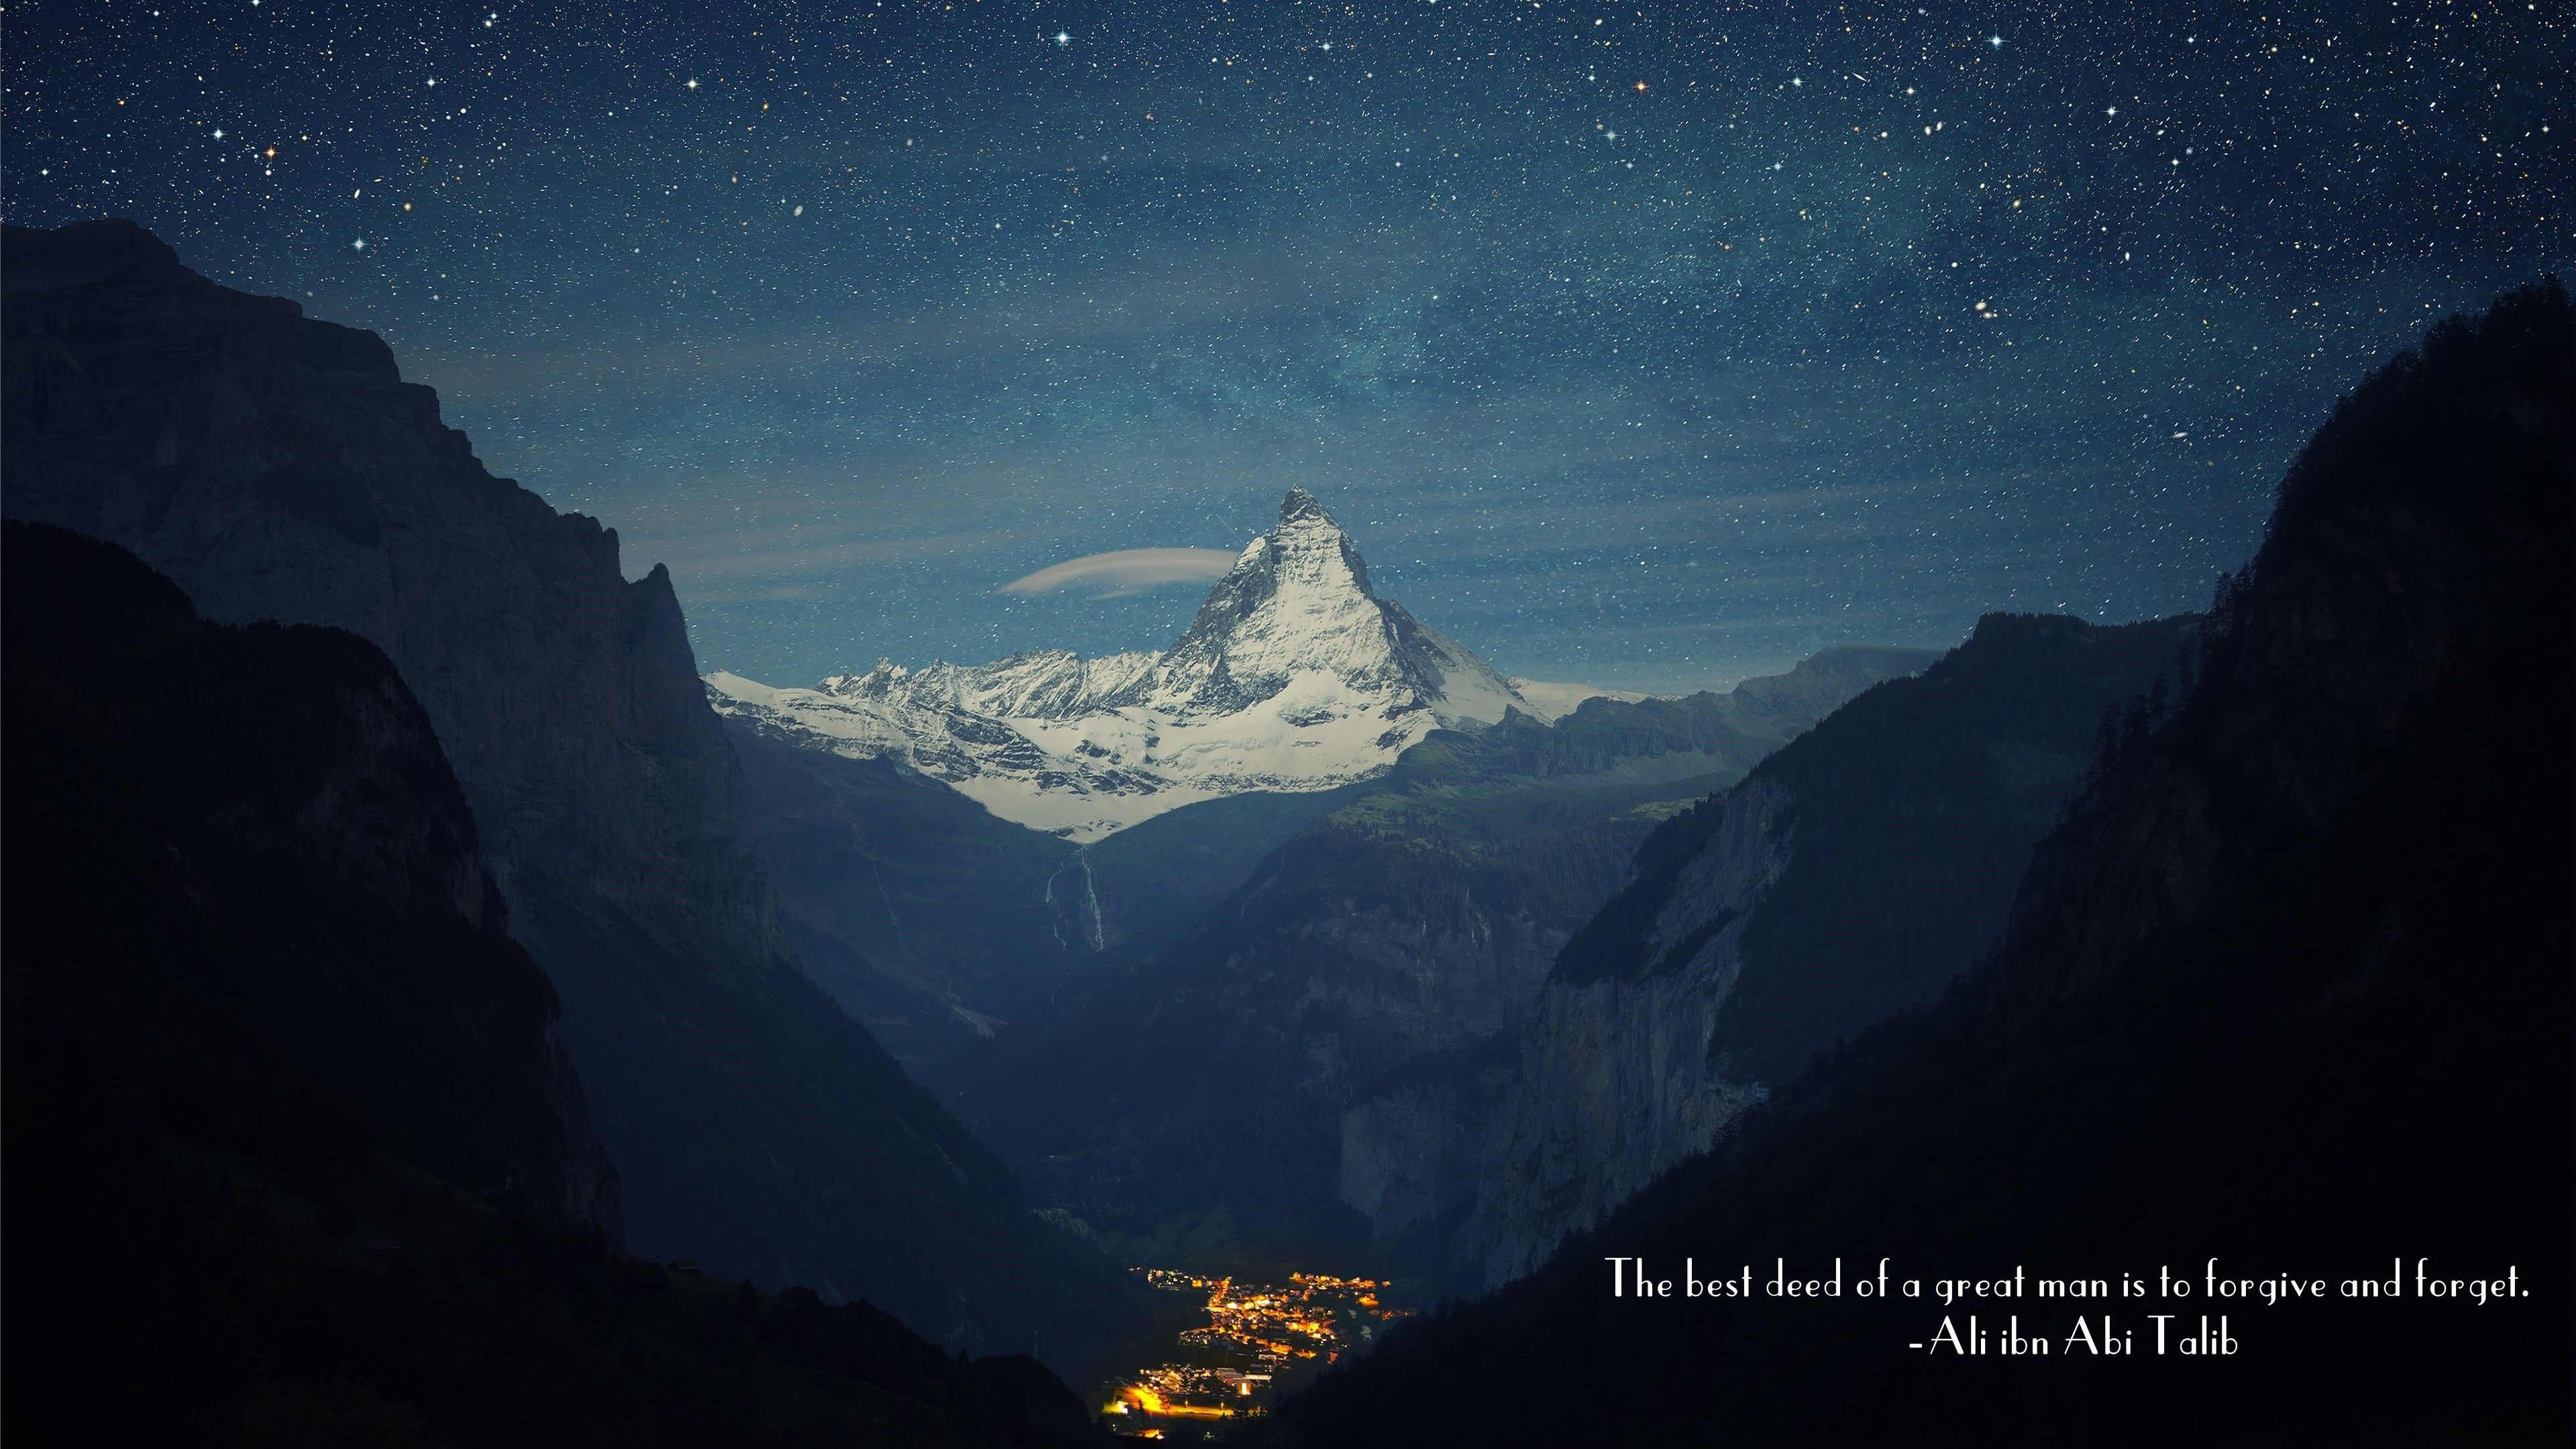 Ali Ibn Abi Talib Imam Islam Quote Mountain Pass Mountain Town Stars Wallpaper No 232 Switzerland Alps Mountain Wallpaper Matterhorn Mountain